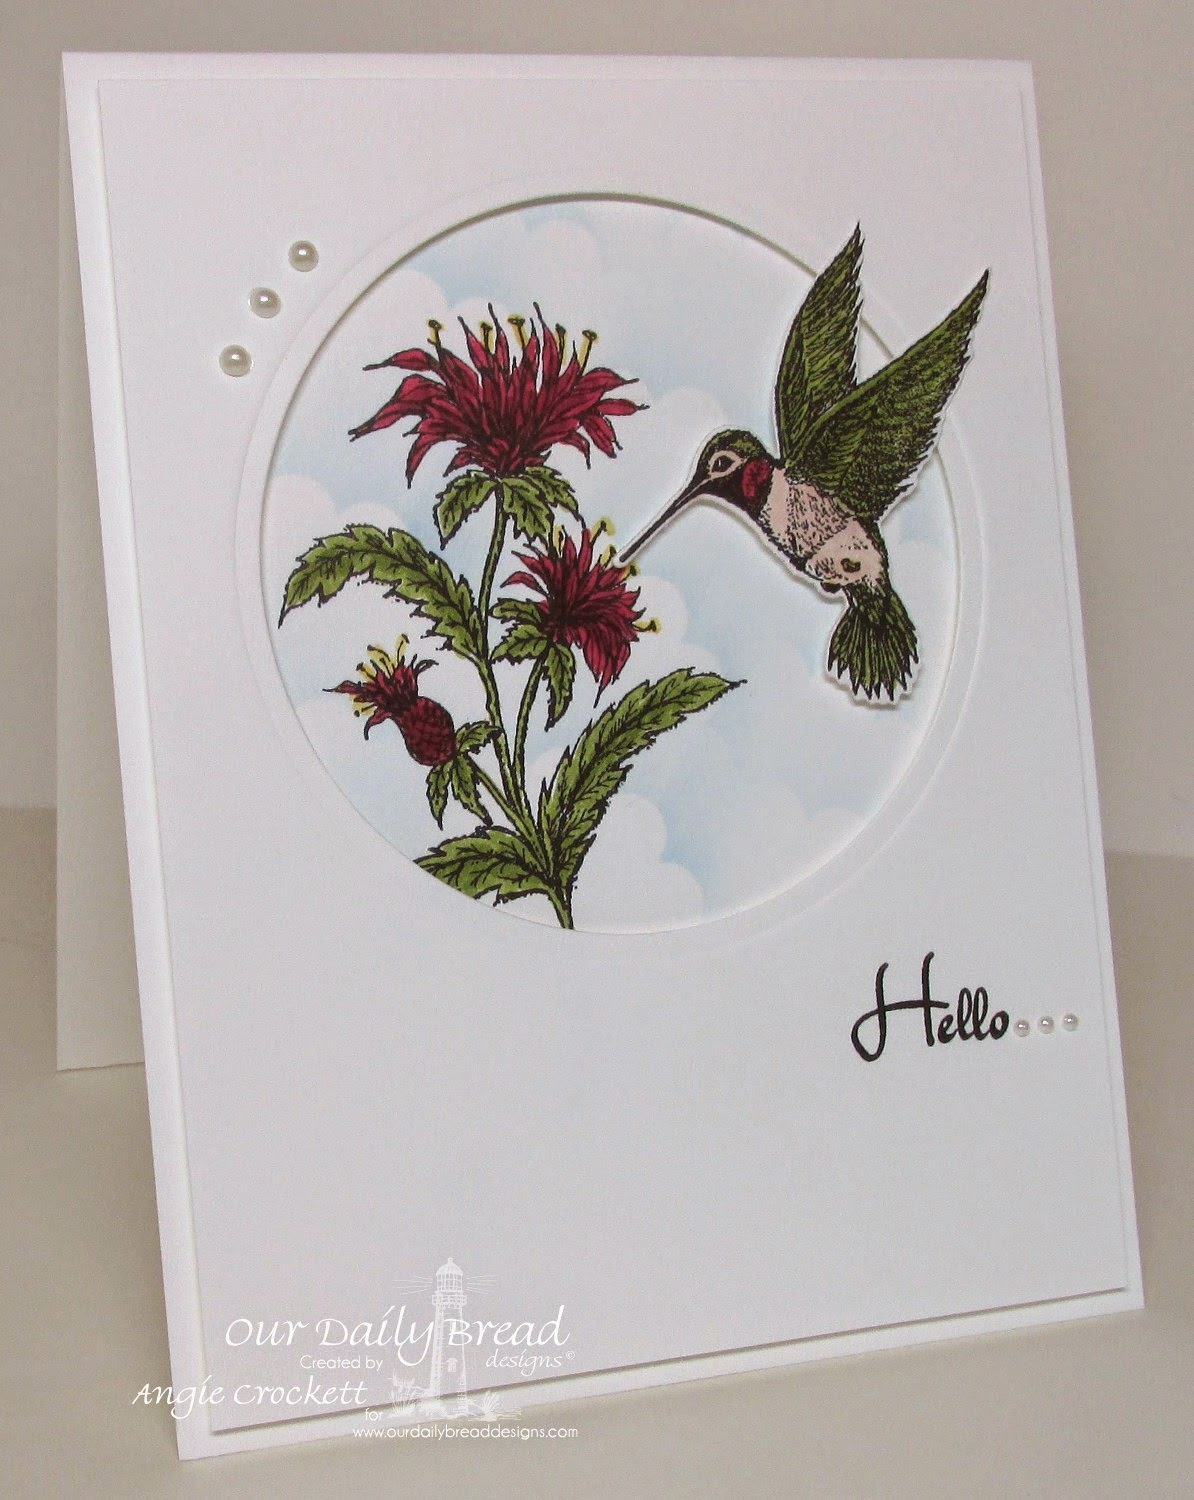 ODBD Miss You, ODBD Bee Balm, ODBD Hummingbird Single, ODBD Custom Hummingbird Die, Card Designer Angie Crockett